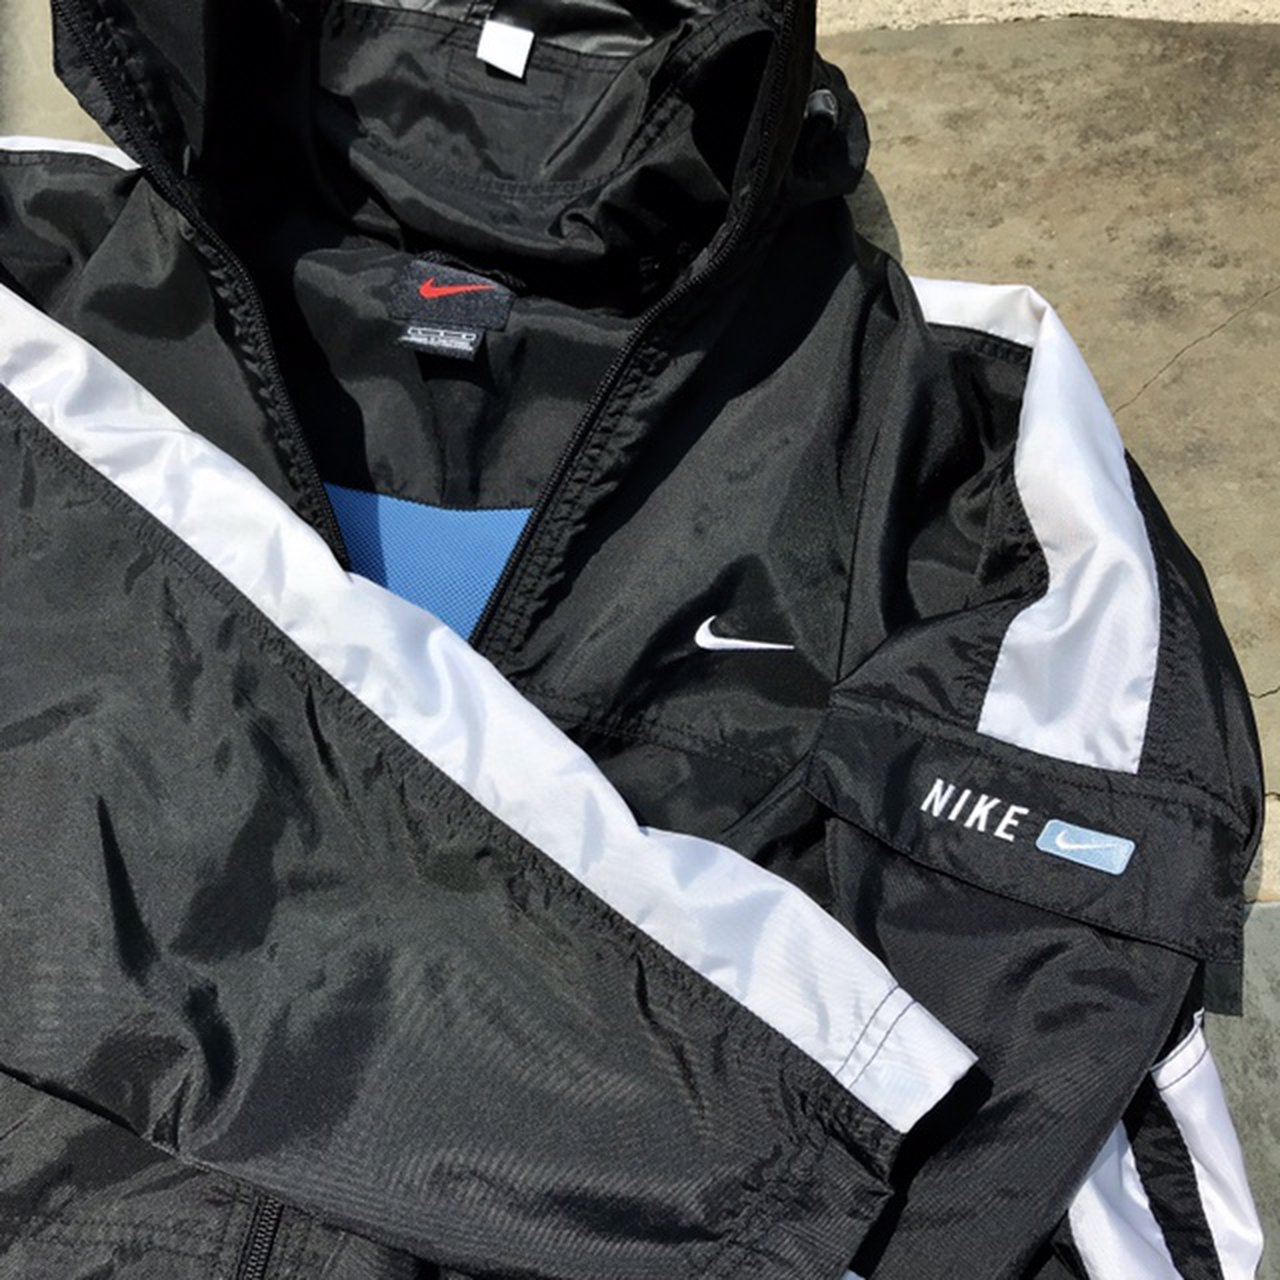 6c621ebe7 @solacecapone. 27 days ago. Temple, United States. Vintage 1990s Black and white  Nike full zip windbreaker jacket ...